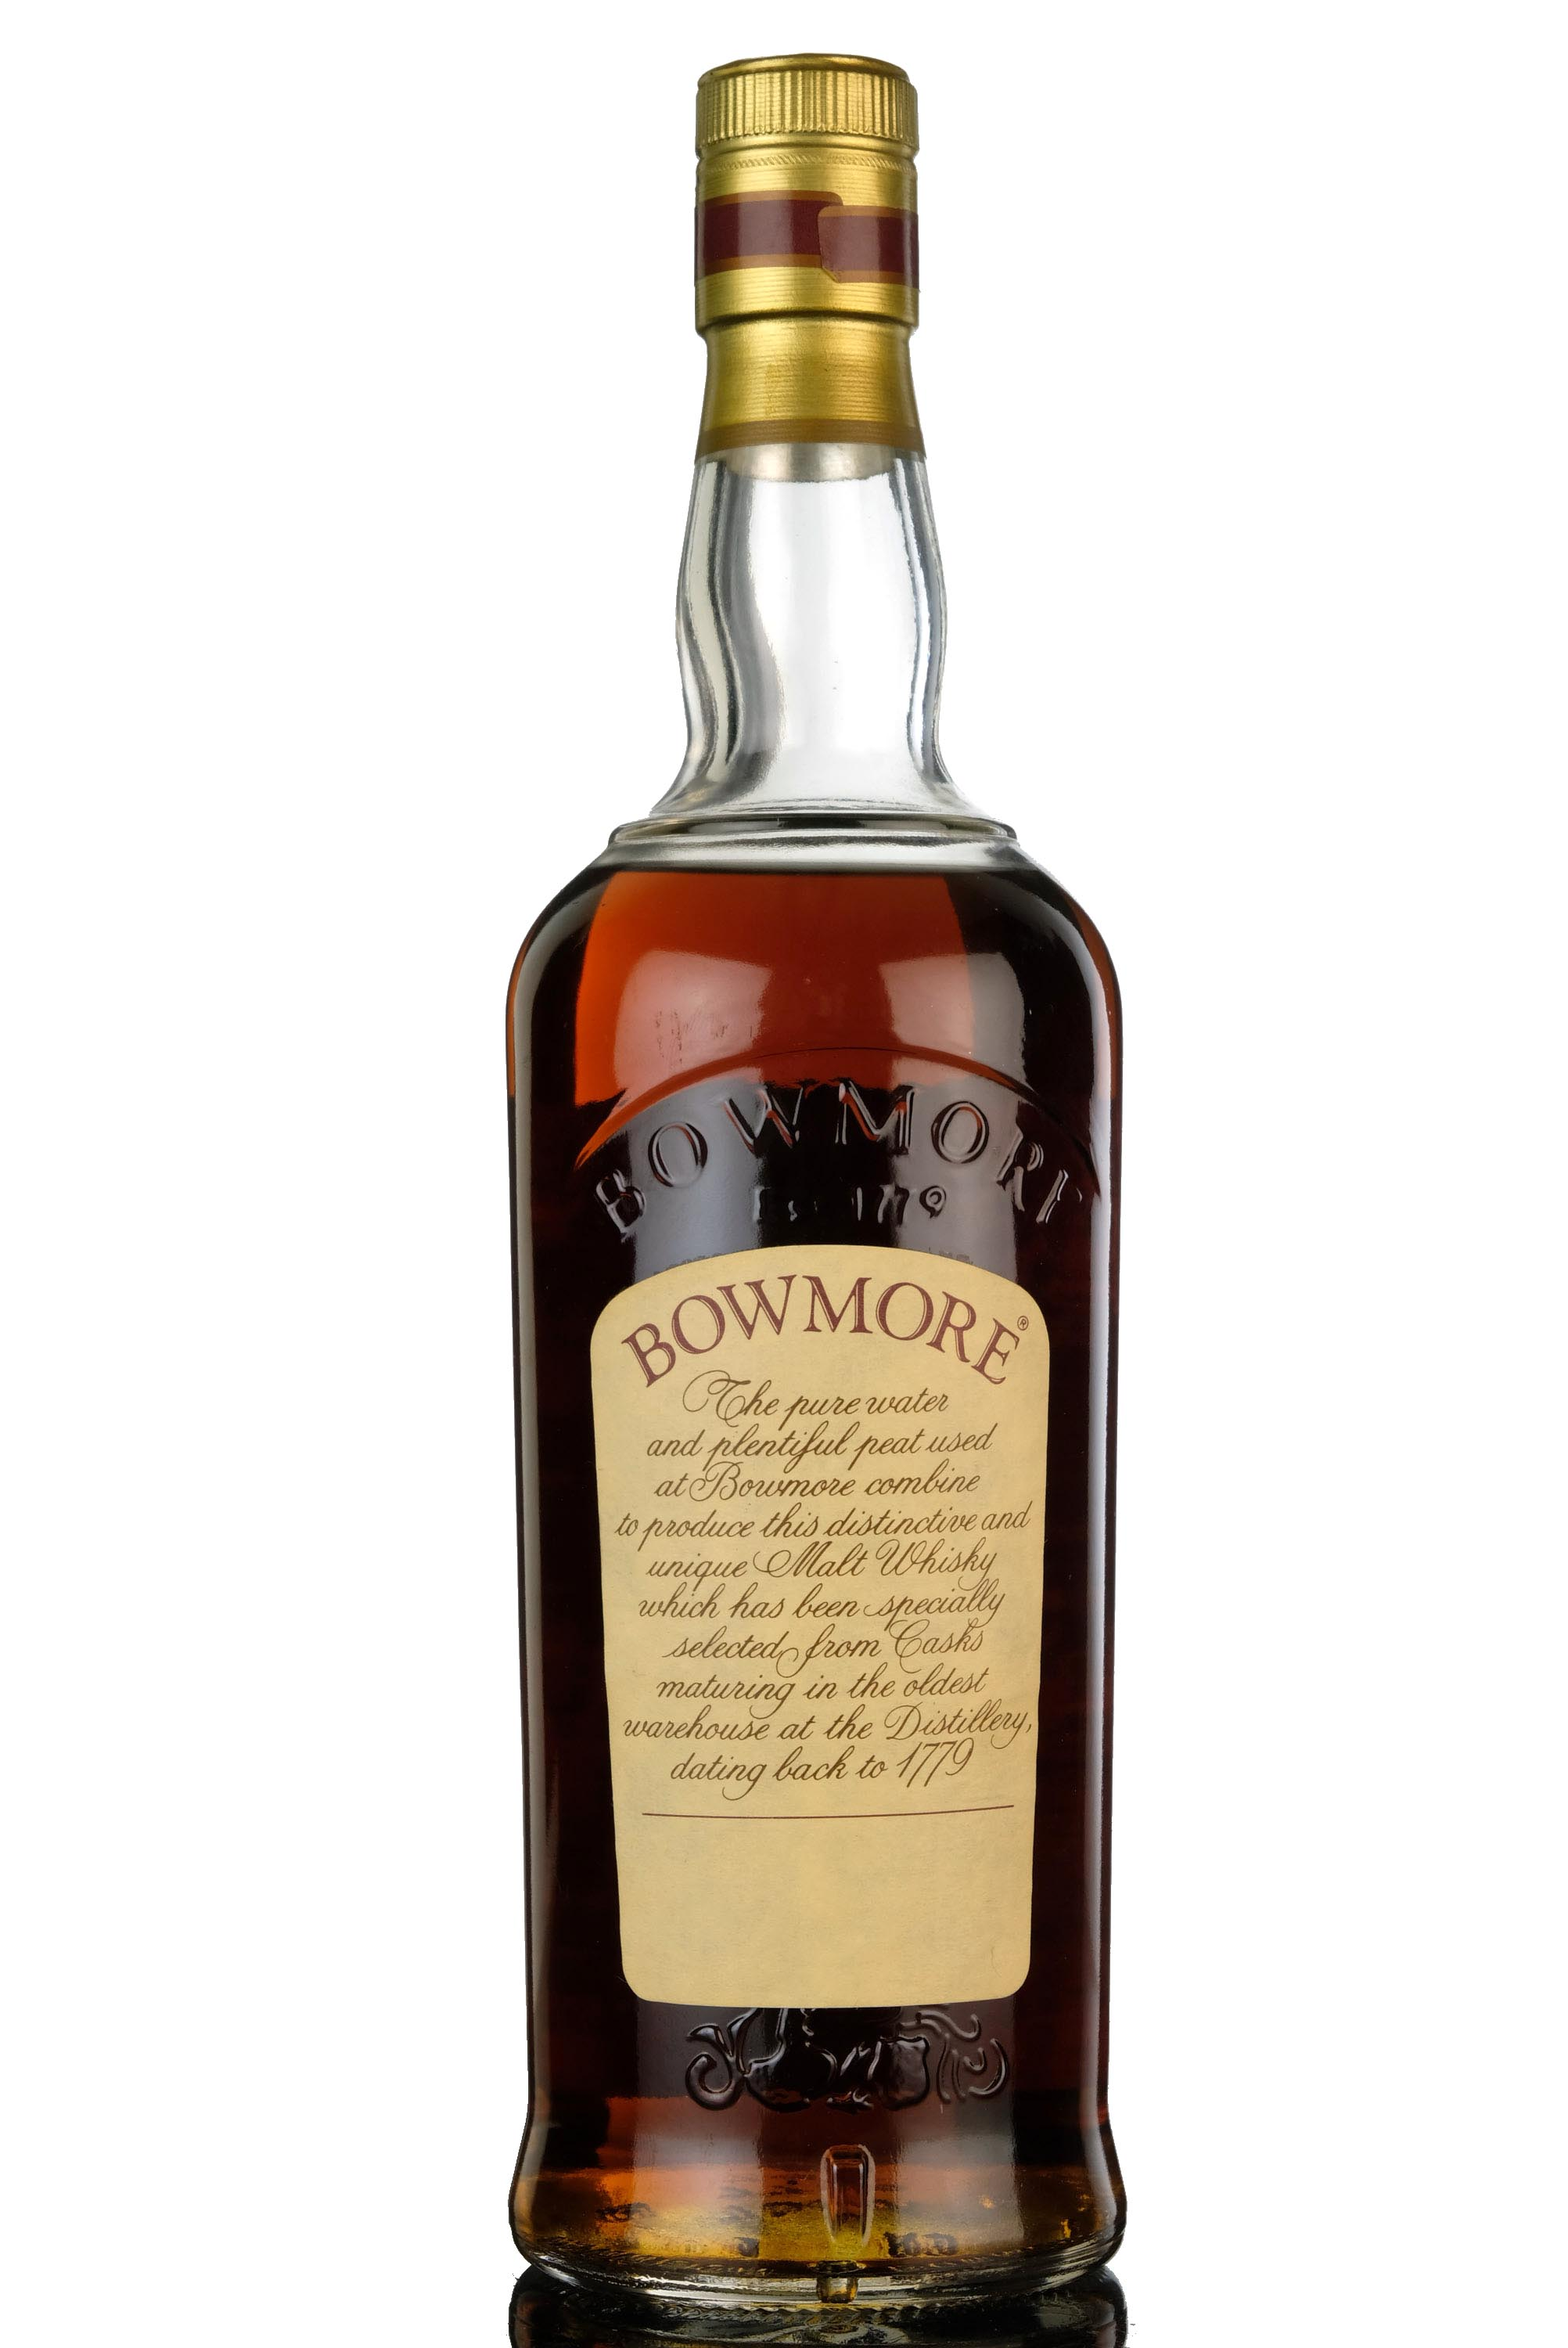 bowmore 1972 - 21 year old